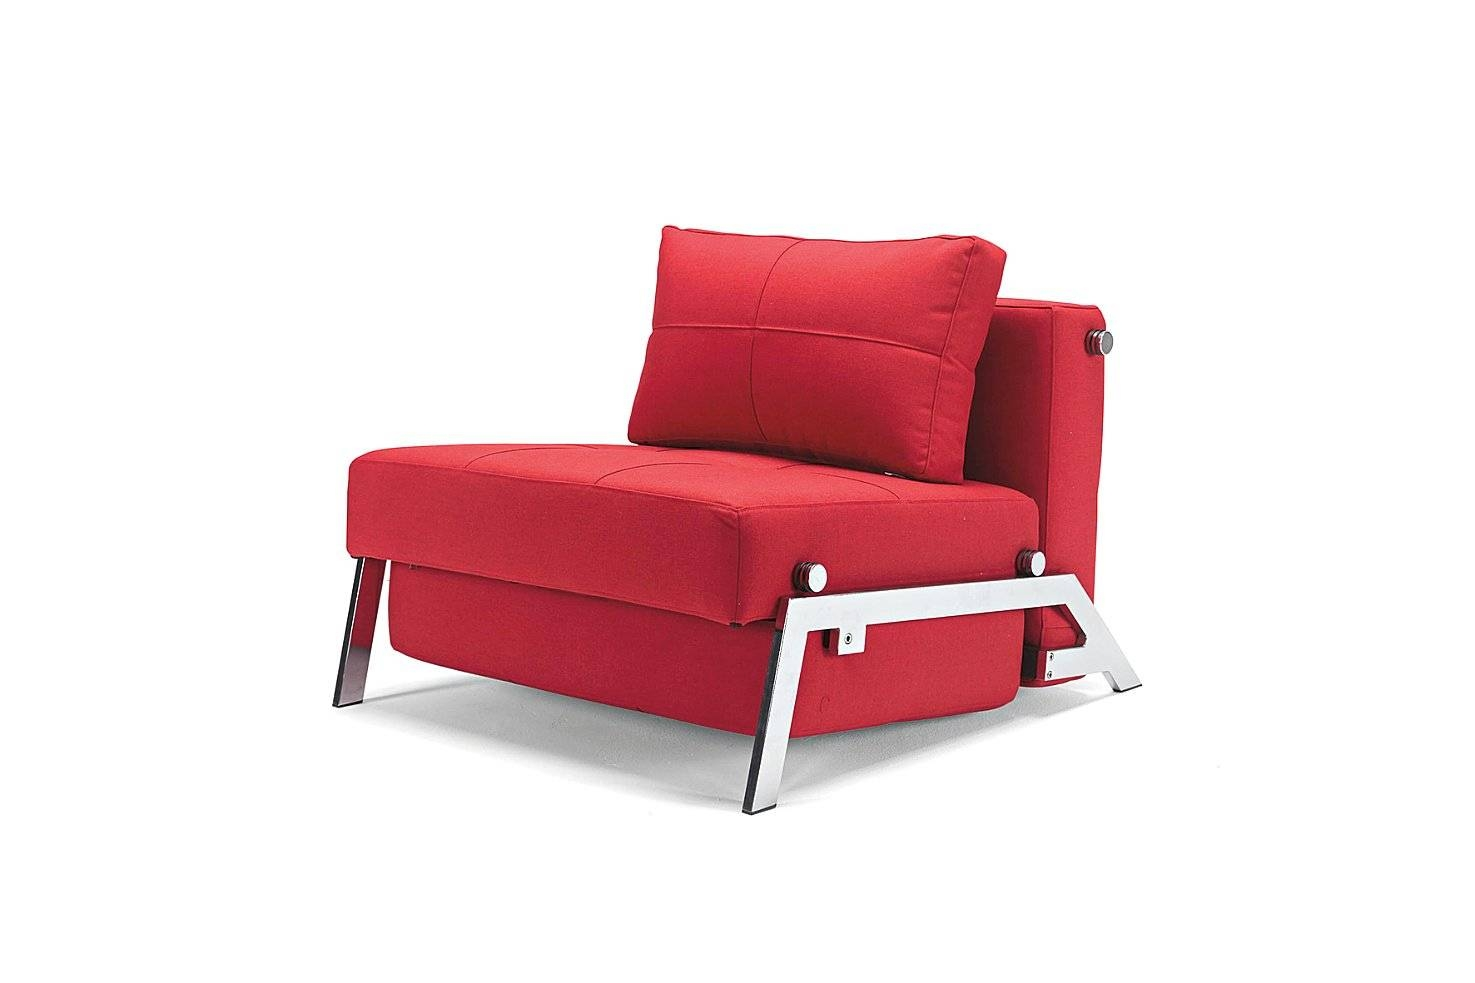 Contemporary Single Sofa Bed – Internationalinteriordesigns inside Single Sofa Beds (Image 2 of 30)